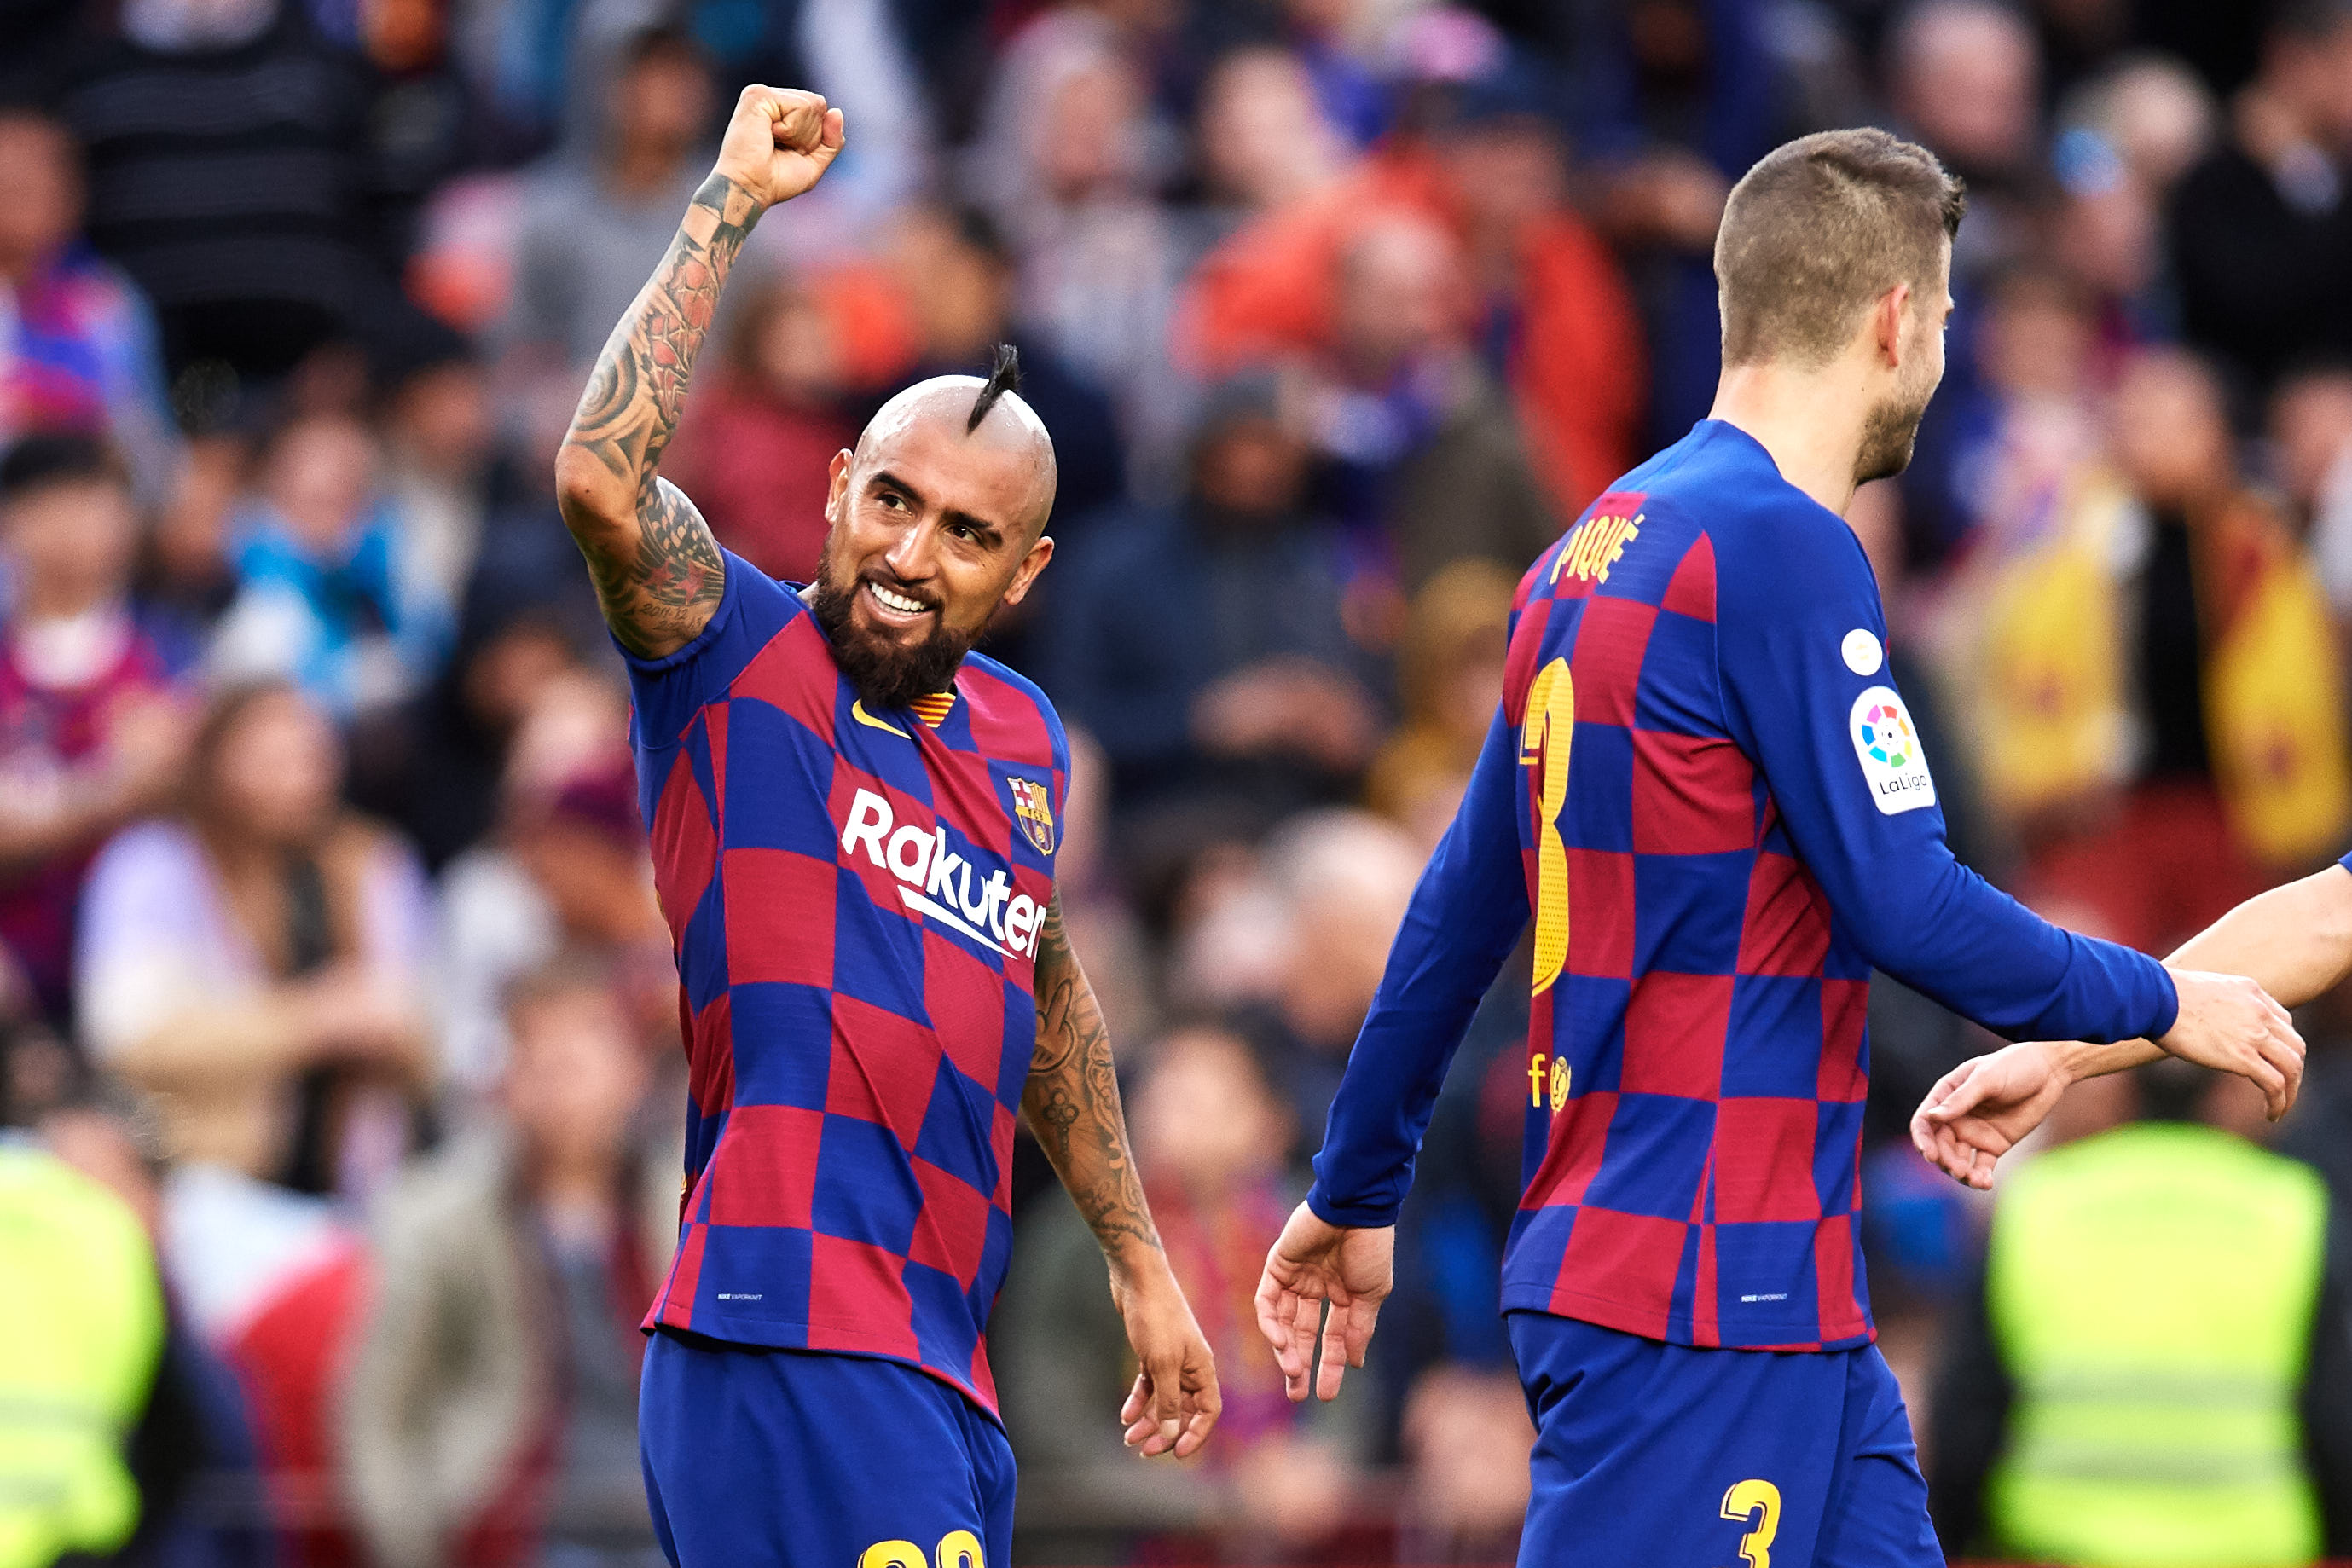 Can Vidal add to his goal tally this weekend? (Photo by Alex Caparros/Getty Images)